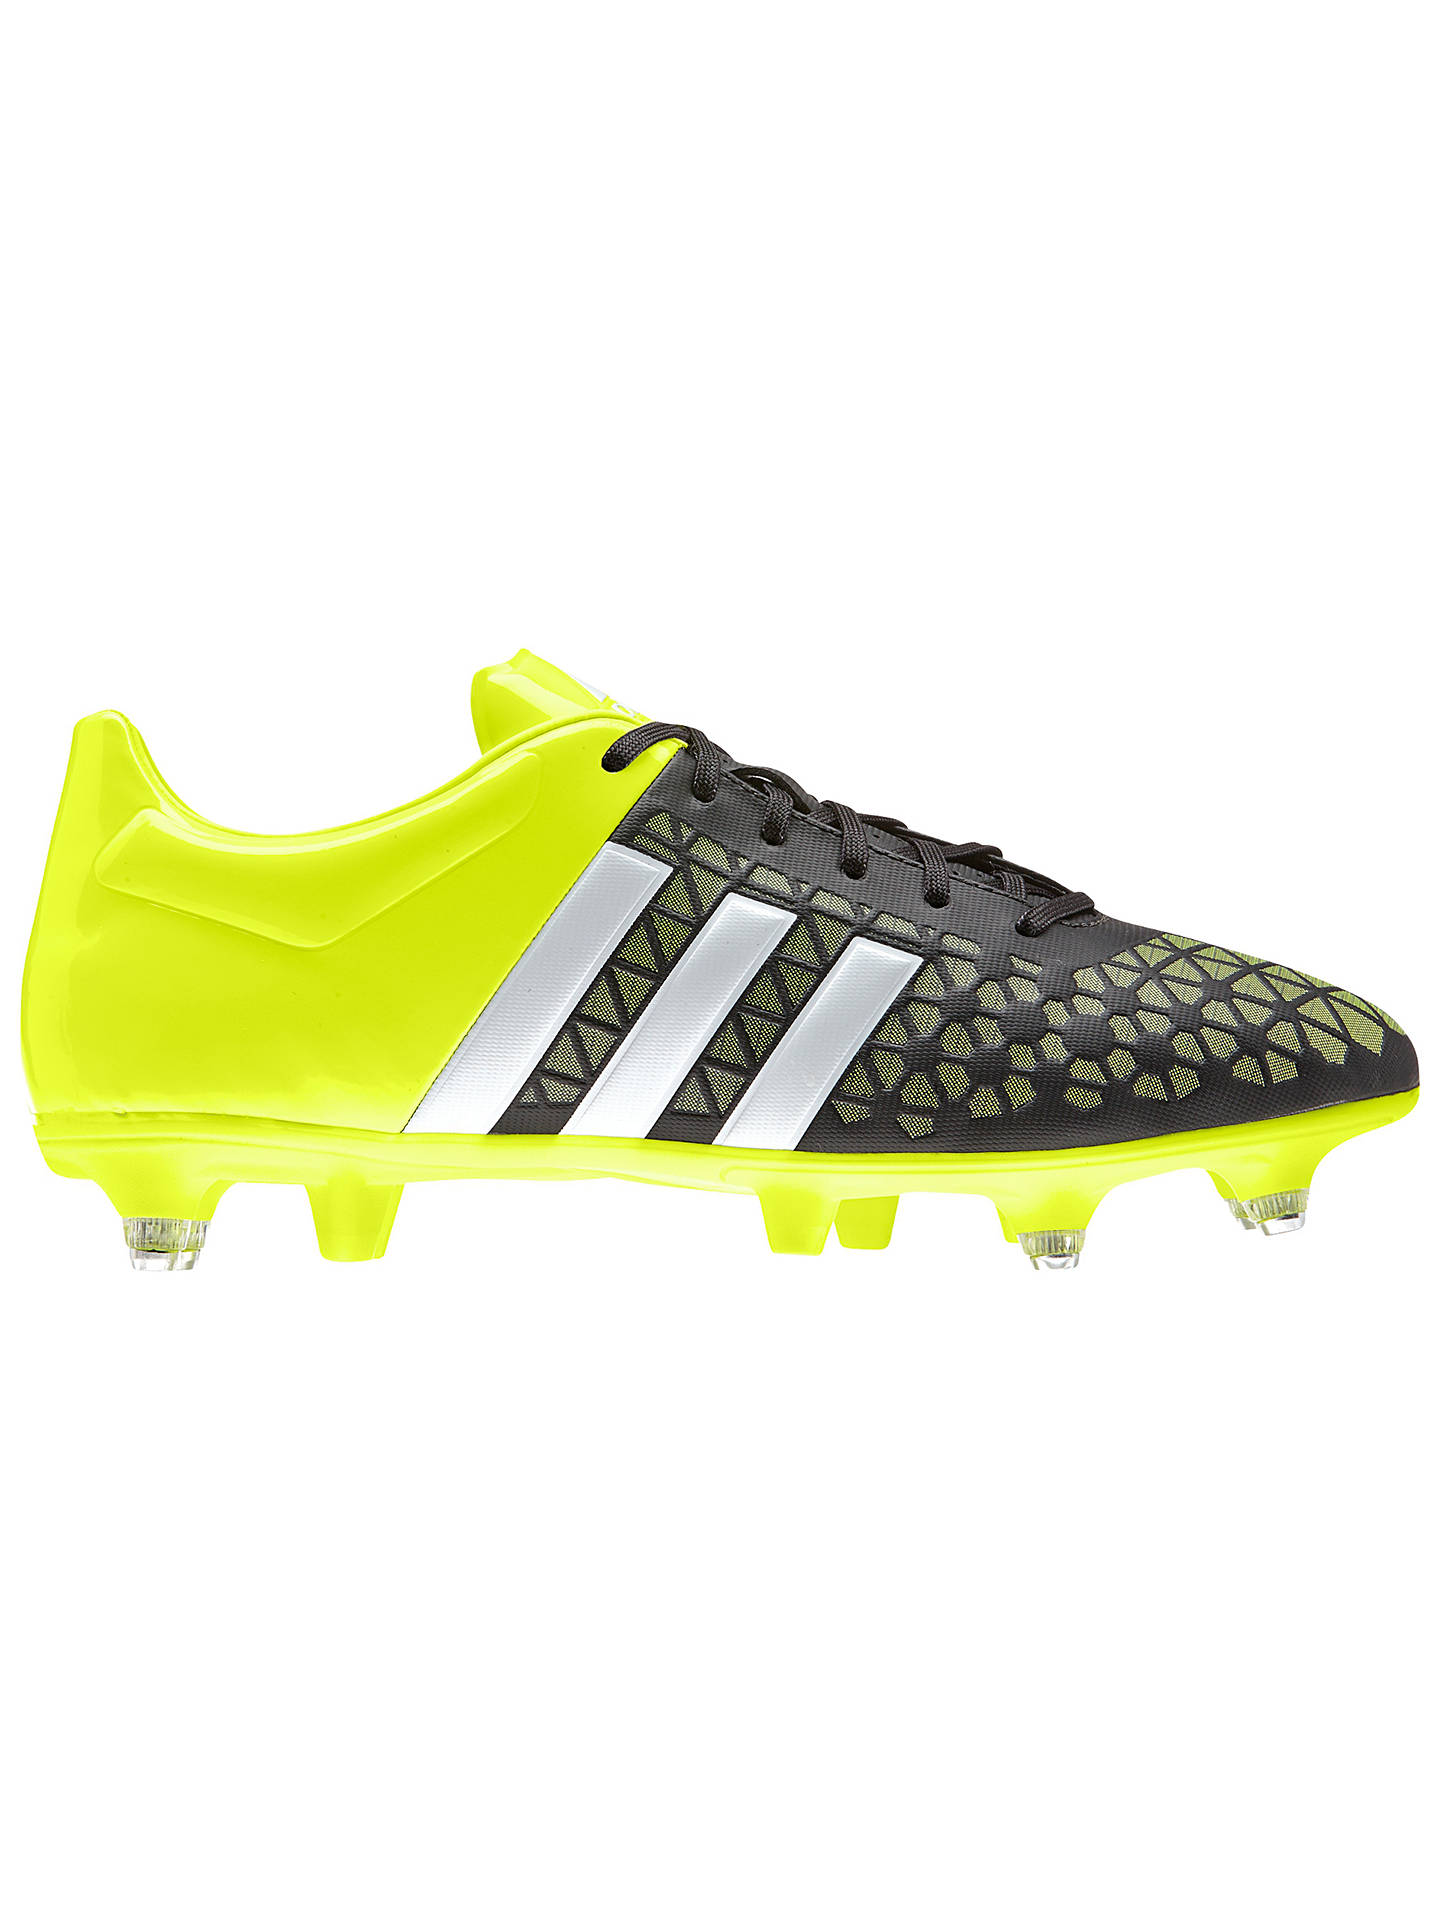 f637648b236 Buy Adidas Ace 15.3 Soft Ground Men s Football Boots